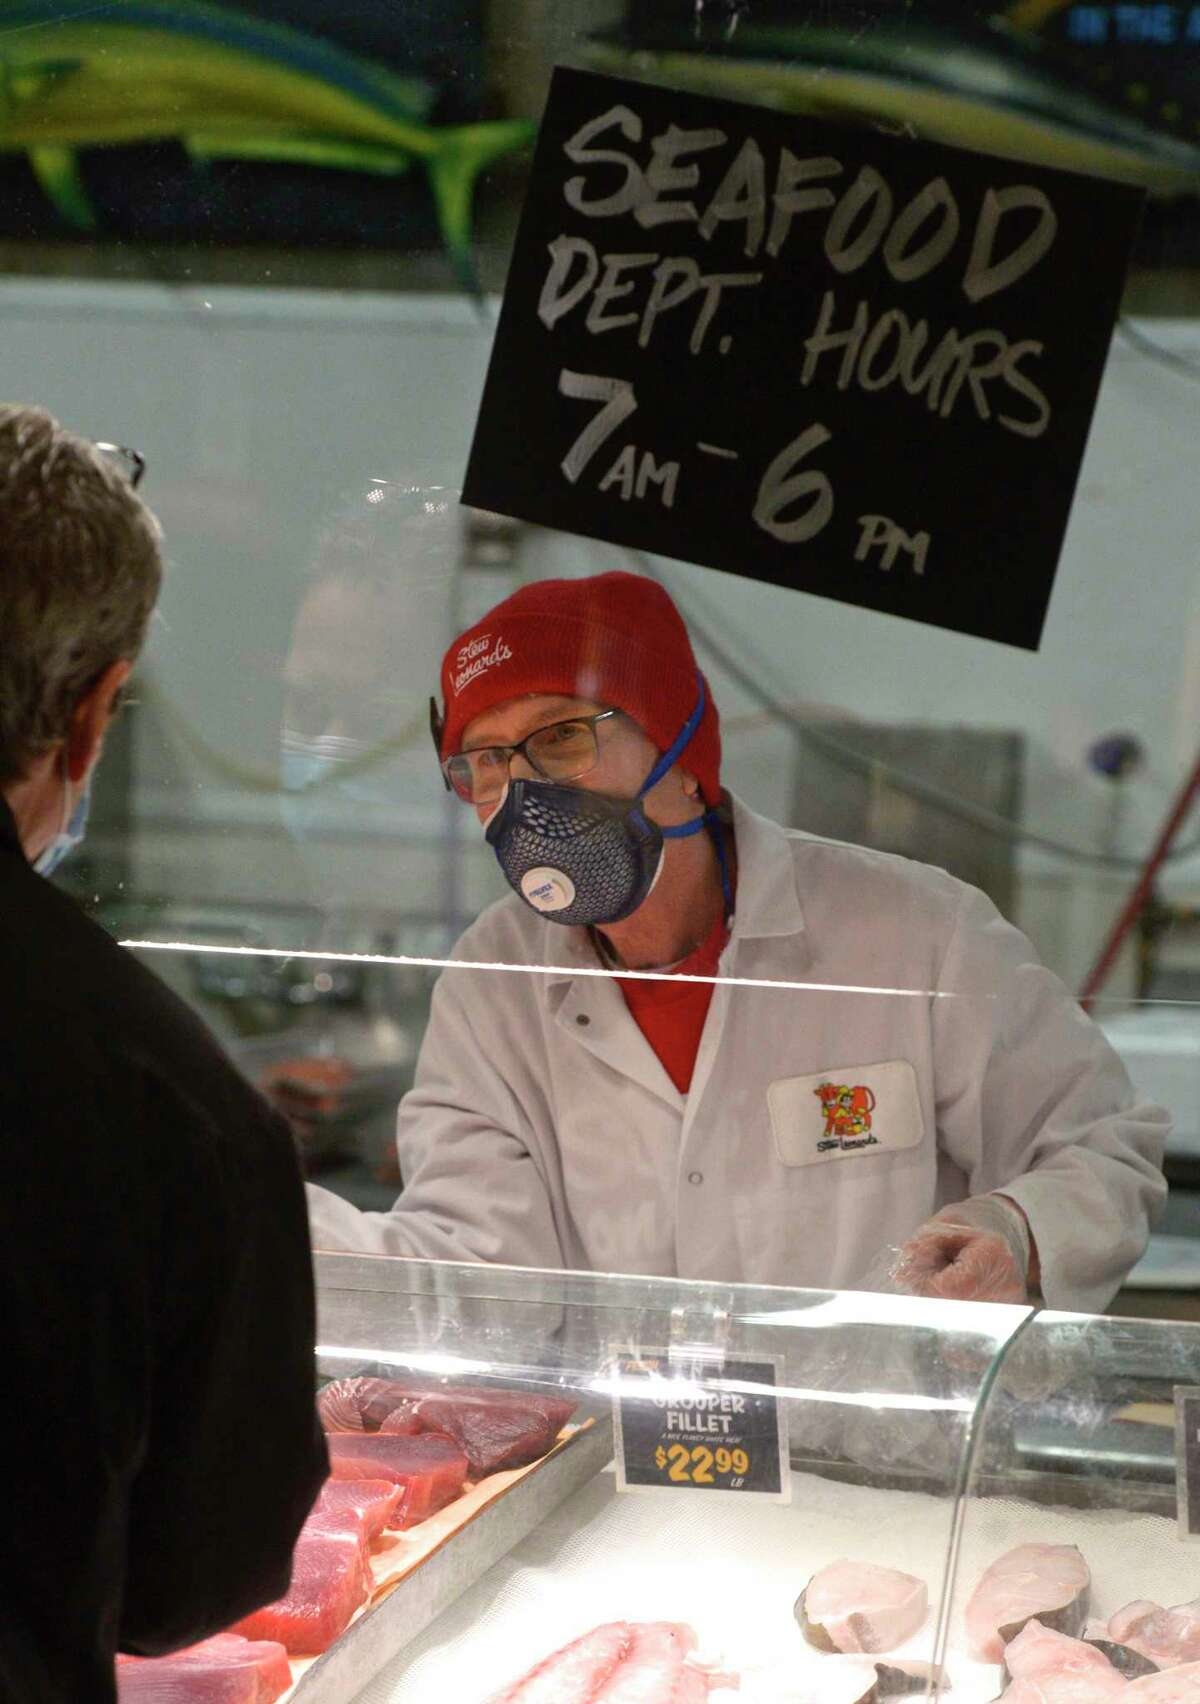 Zig Zavory, of Danbury, of New Milford, wears a mask while working in the seafood department at Stew Leonard's today, less than 24 hours after the implementation of Gov. Ned Lamont's order directing masks to be worn in public setting where social distancing is not possible. Danbury, Conn. Tuesday, April 21, 2020.